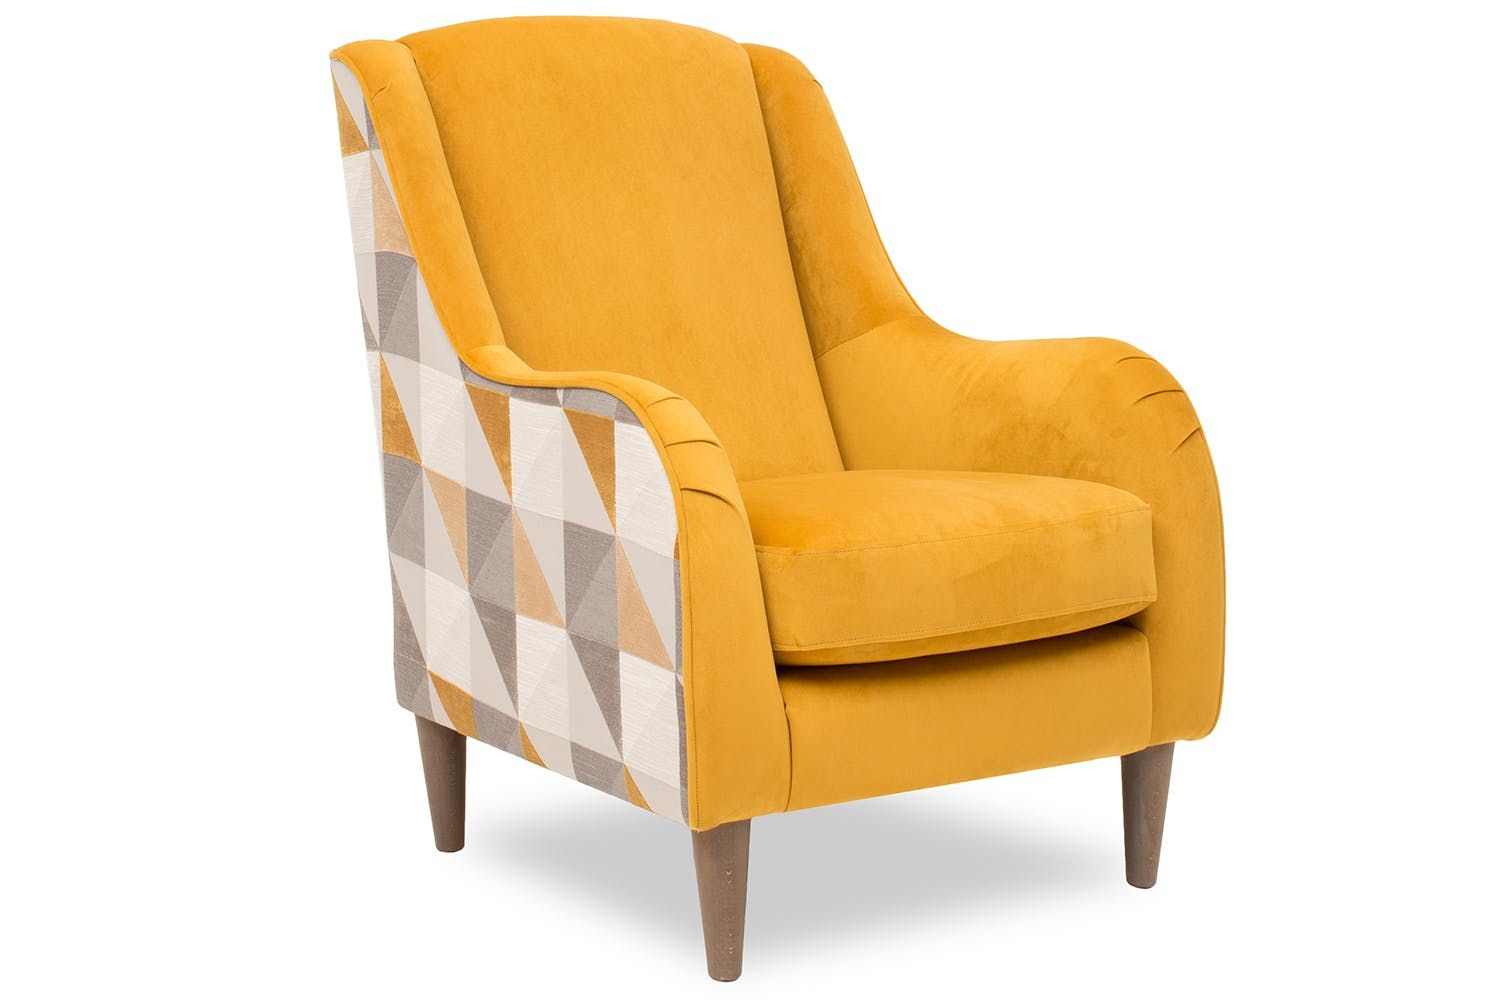 Holli Accent Chair Colour Options Ireland Accent Chairs Chair Sit Back And Relax